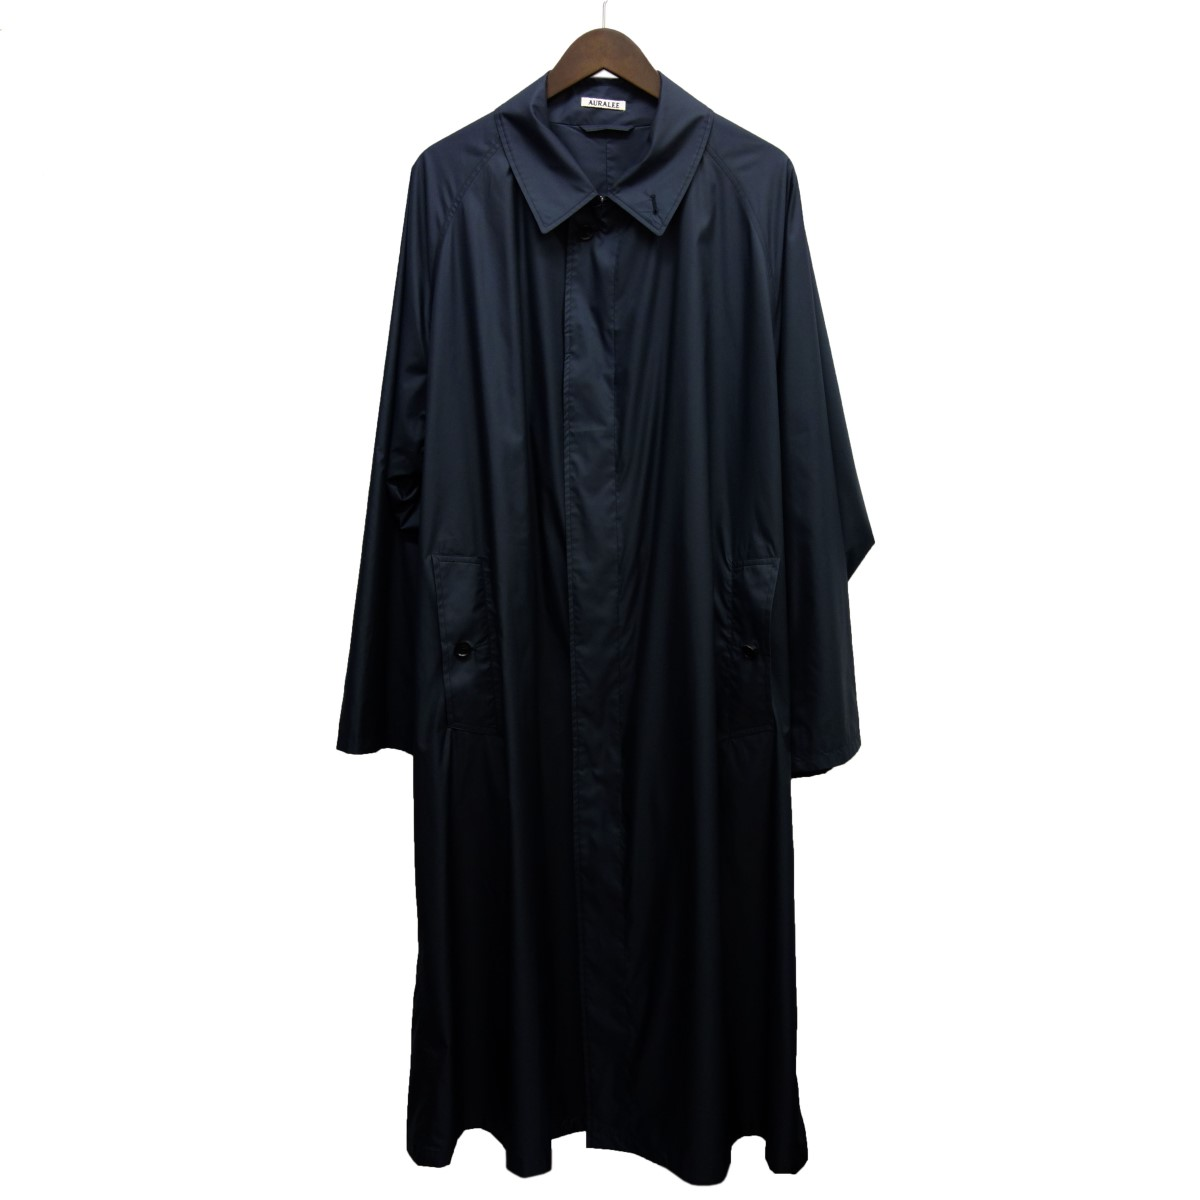 【中古】AURALEE 20SS「LIGHT POLYESTER SOUTIEN COLLAR CORT」 ダークネイビー サイズ:3 【050420】(オーラリー)